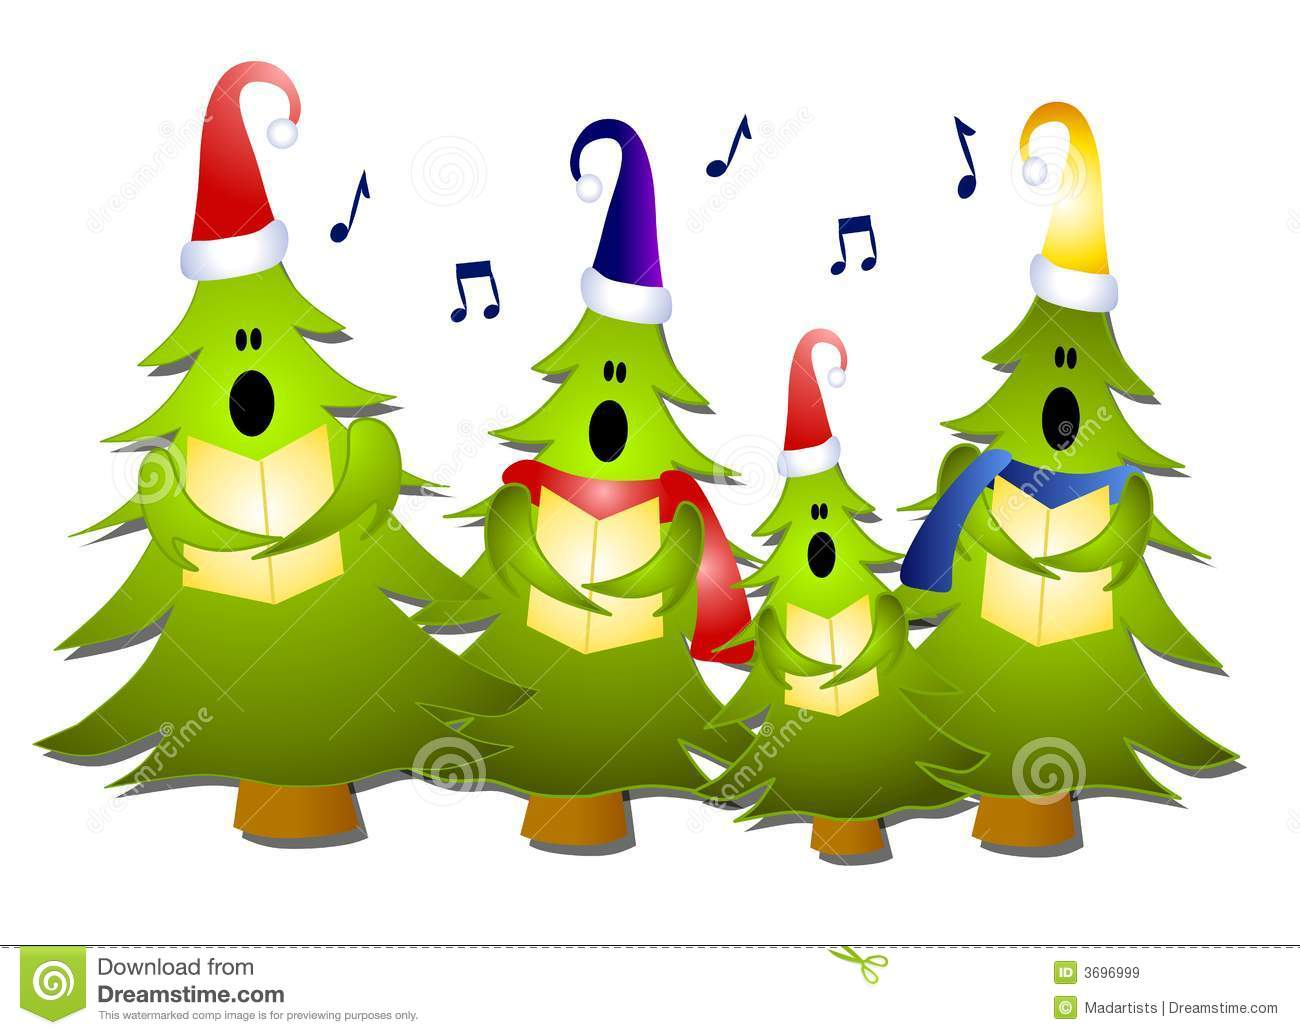 Clip Art Christmas Carolers Clipart christmas singing clipart kid clip art illustration of a group tree carolers singing